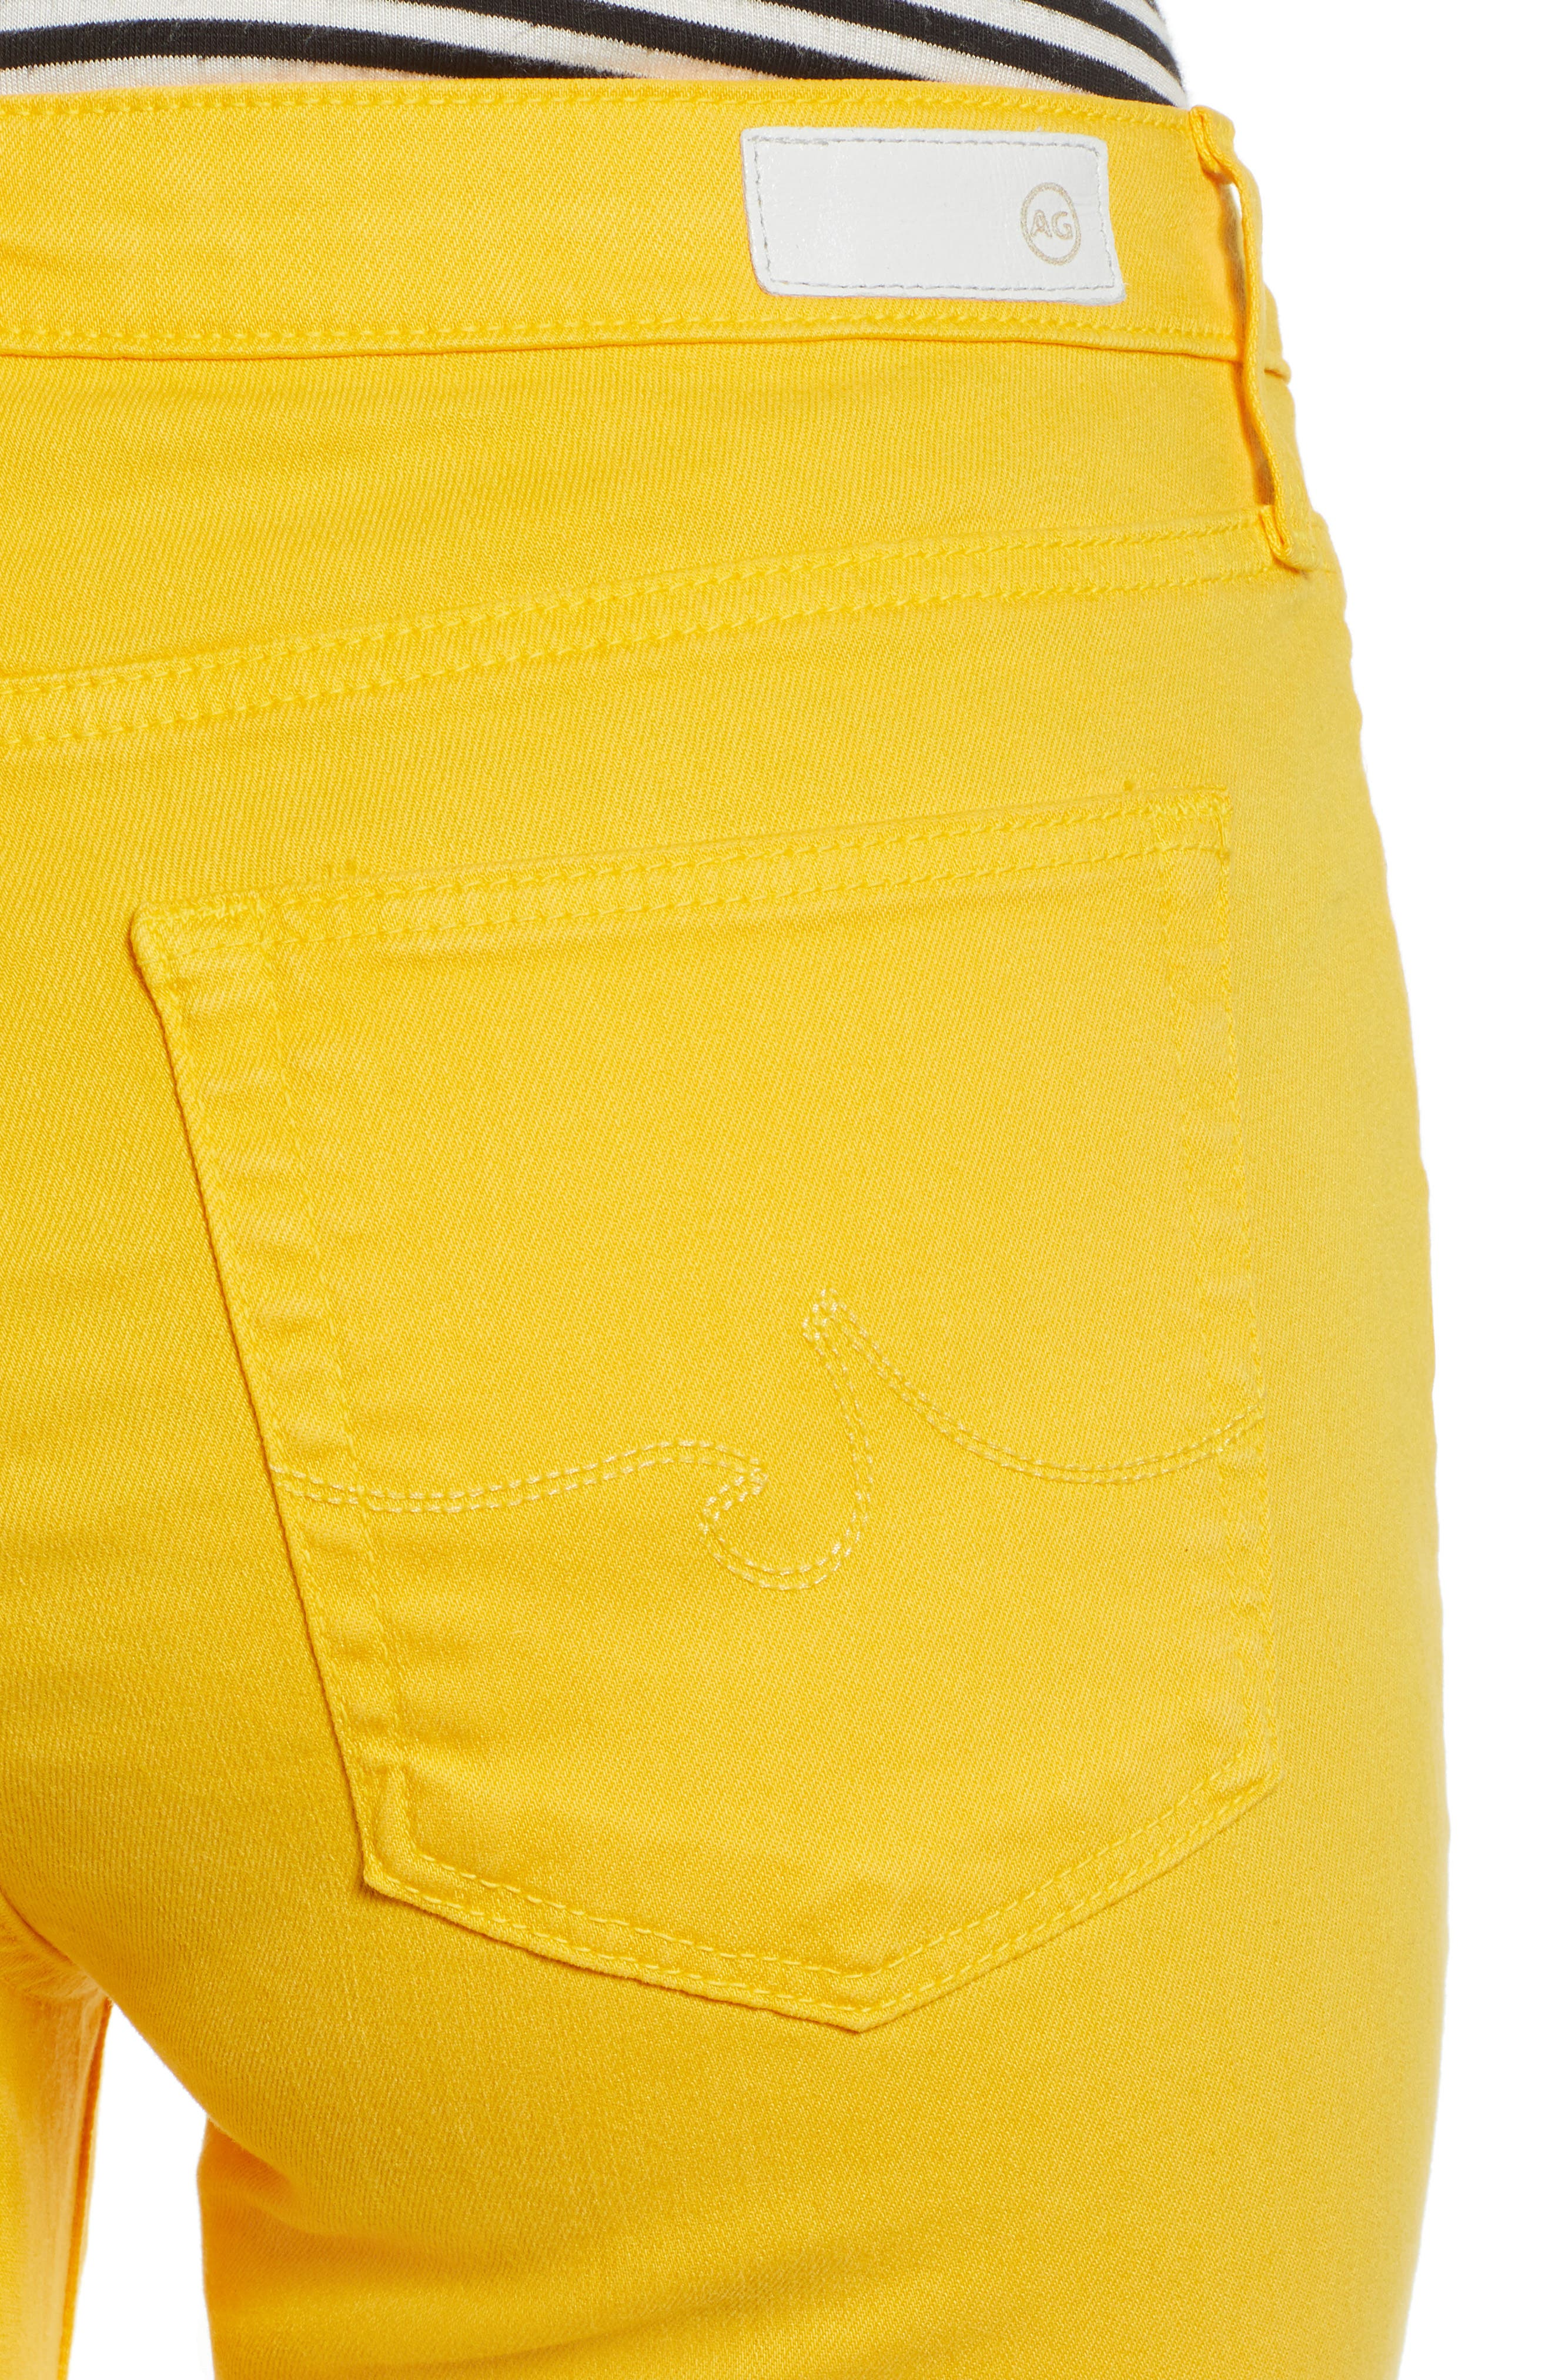 AG, Jodi High Waist Crop Jeans, Alternate thumbnail 5, color, GOLDEN OCHRE